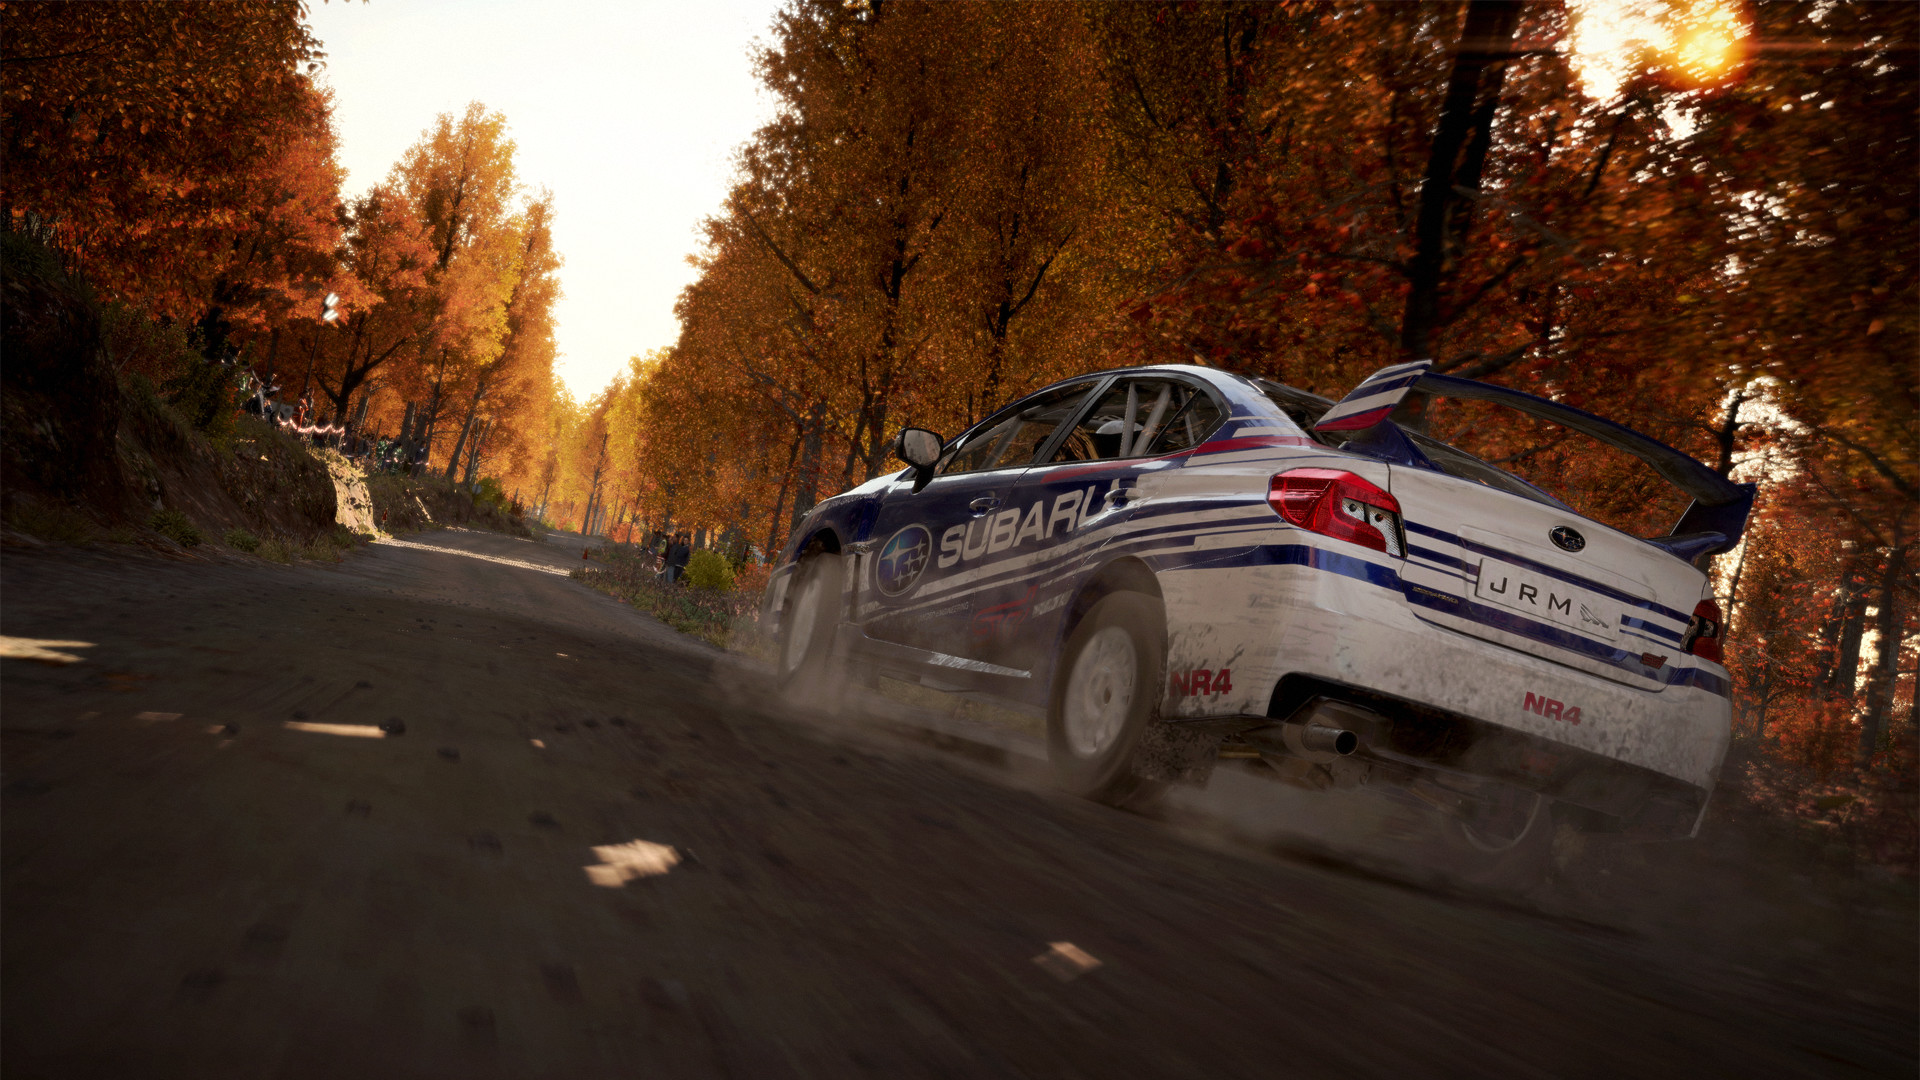 download dirt 4-reloaded cracked singlelink full version free for pc multi 6 language